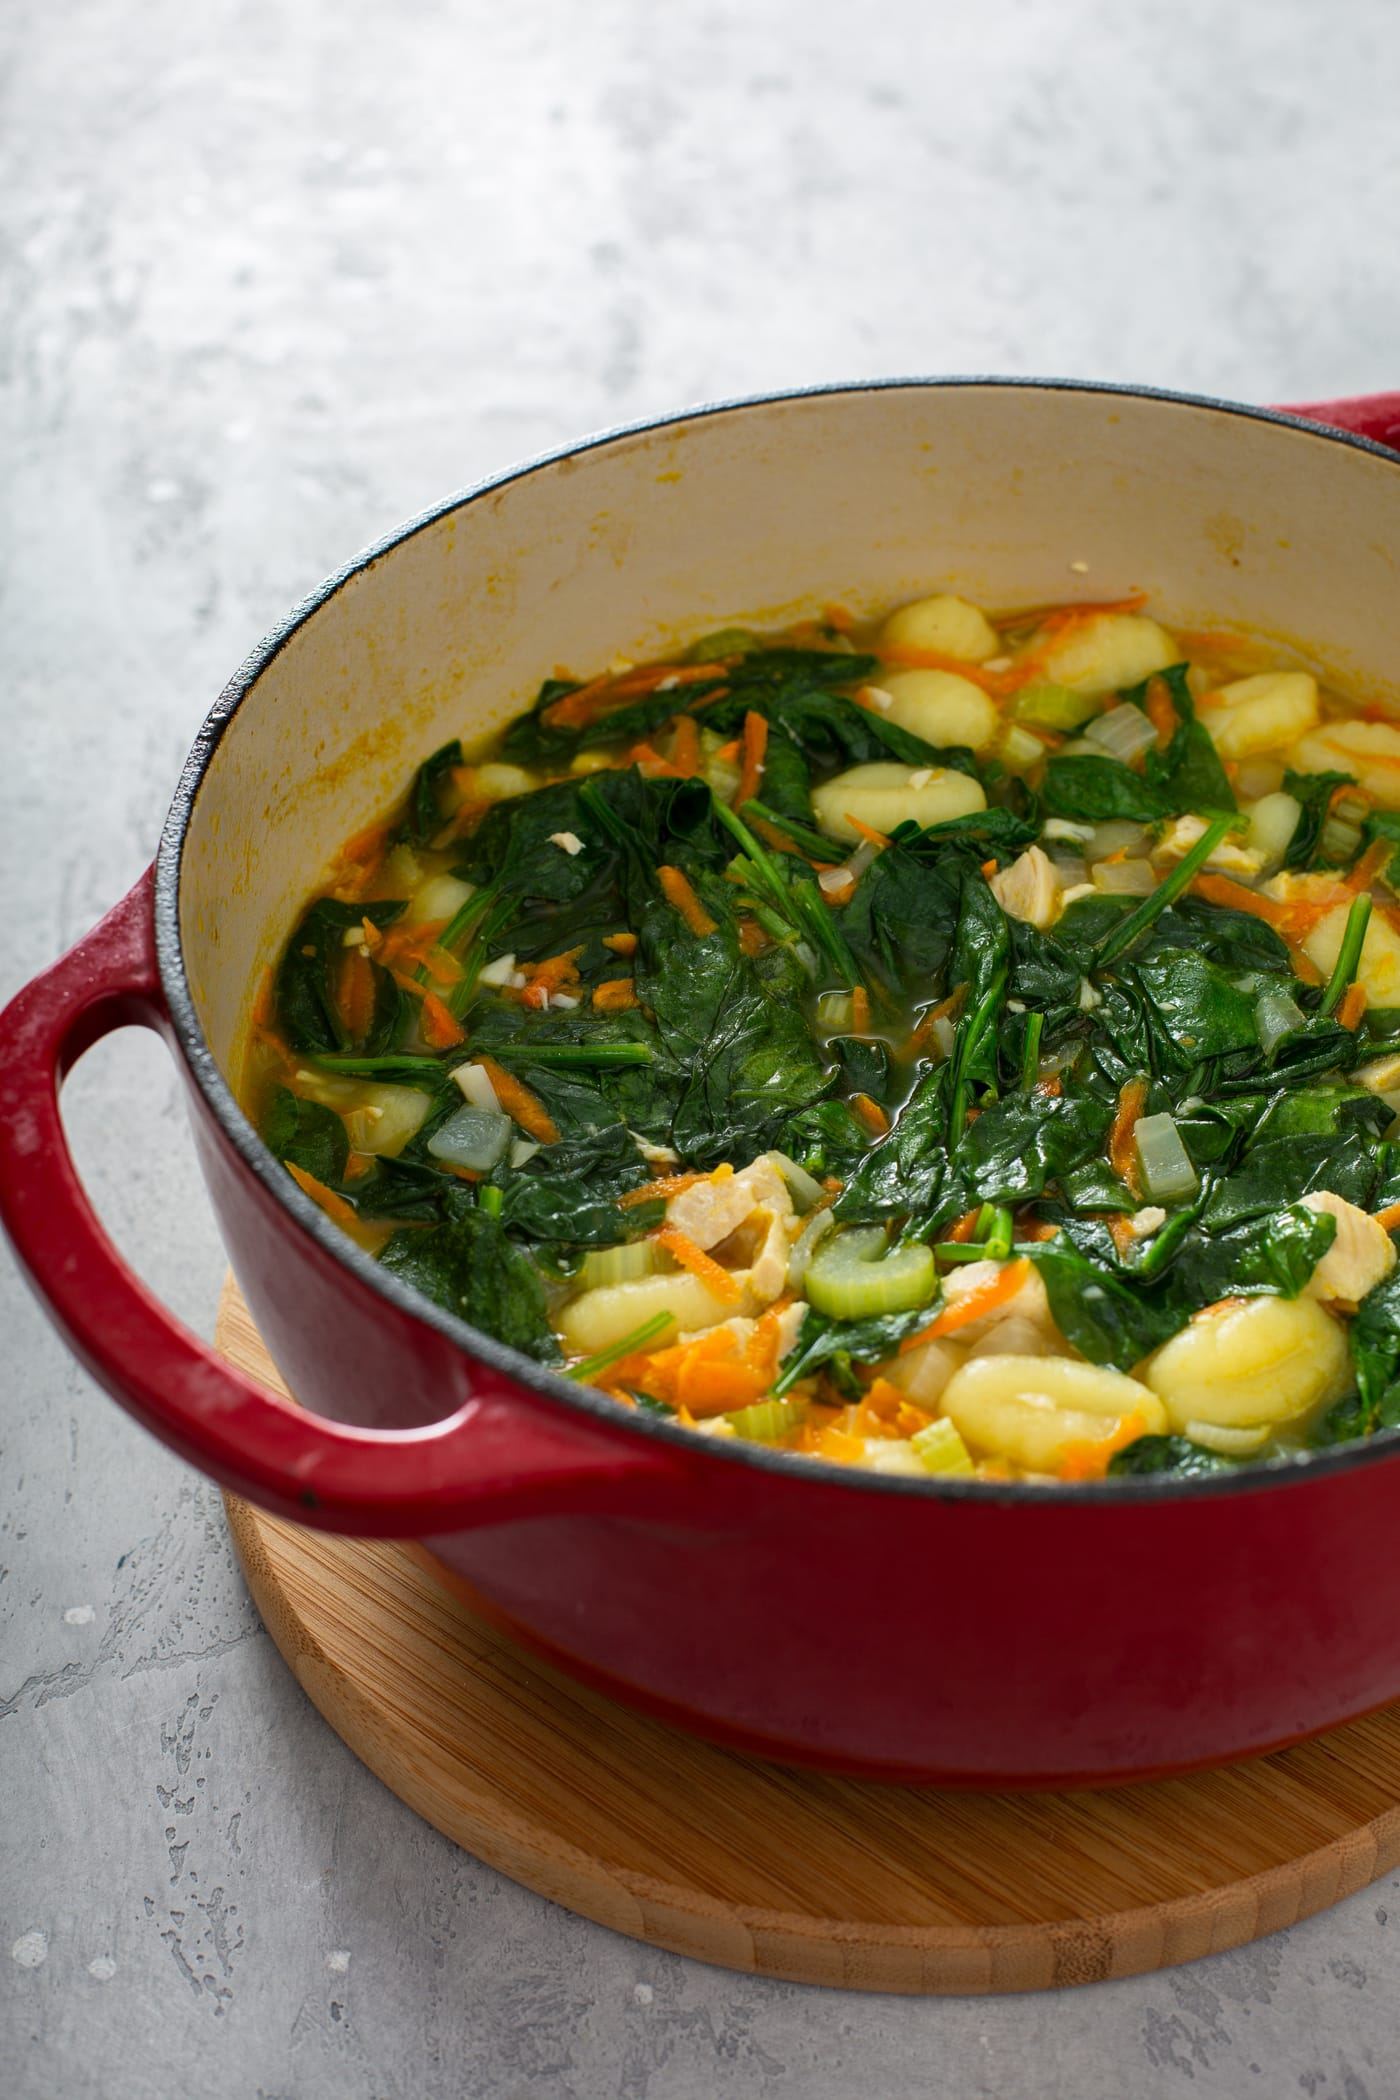 A red soup pot with spinach, gnocchi, shredded carrots, celery, onions and chicken.